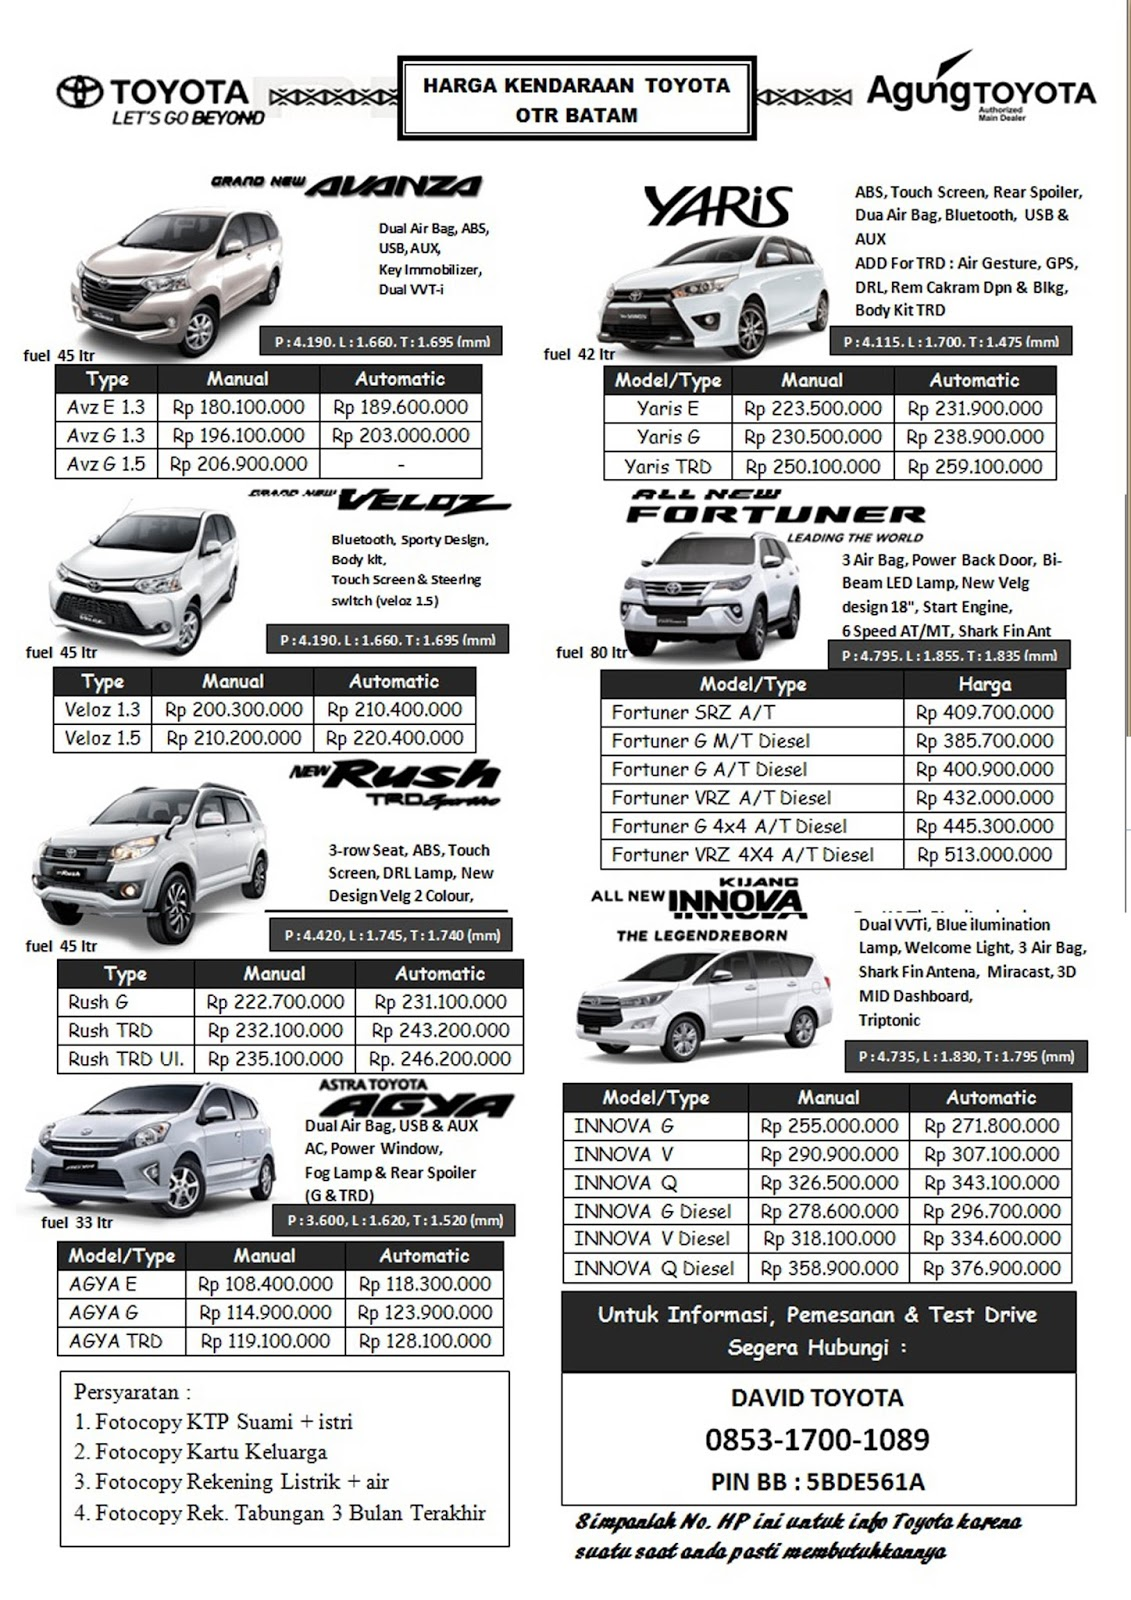 Harga Toyota Grand New Avanza 2016 Warna Putih Price List Terbaru 3 Maret Update David Batam